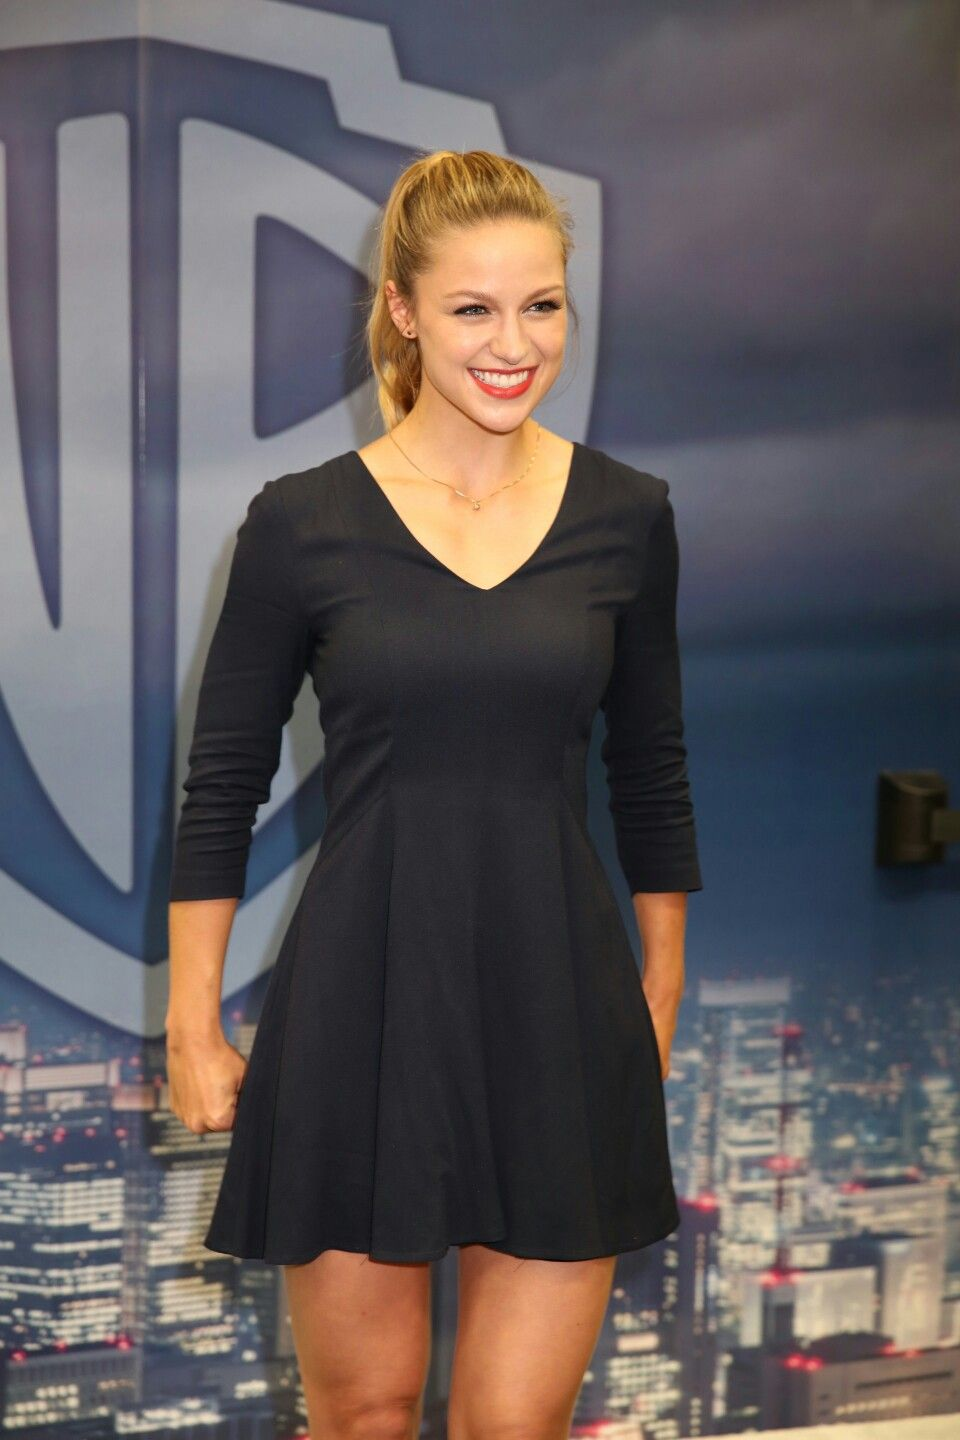 bra Celebrites Nova Patra naked photo 2017